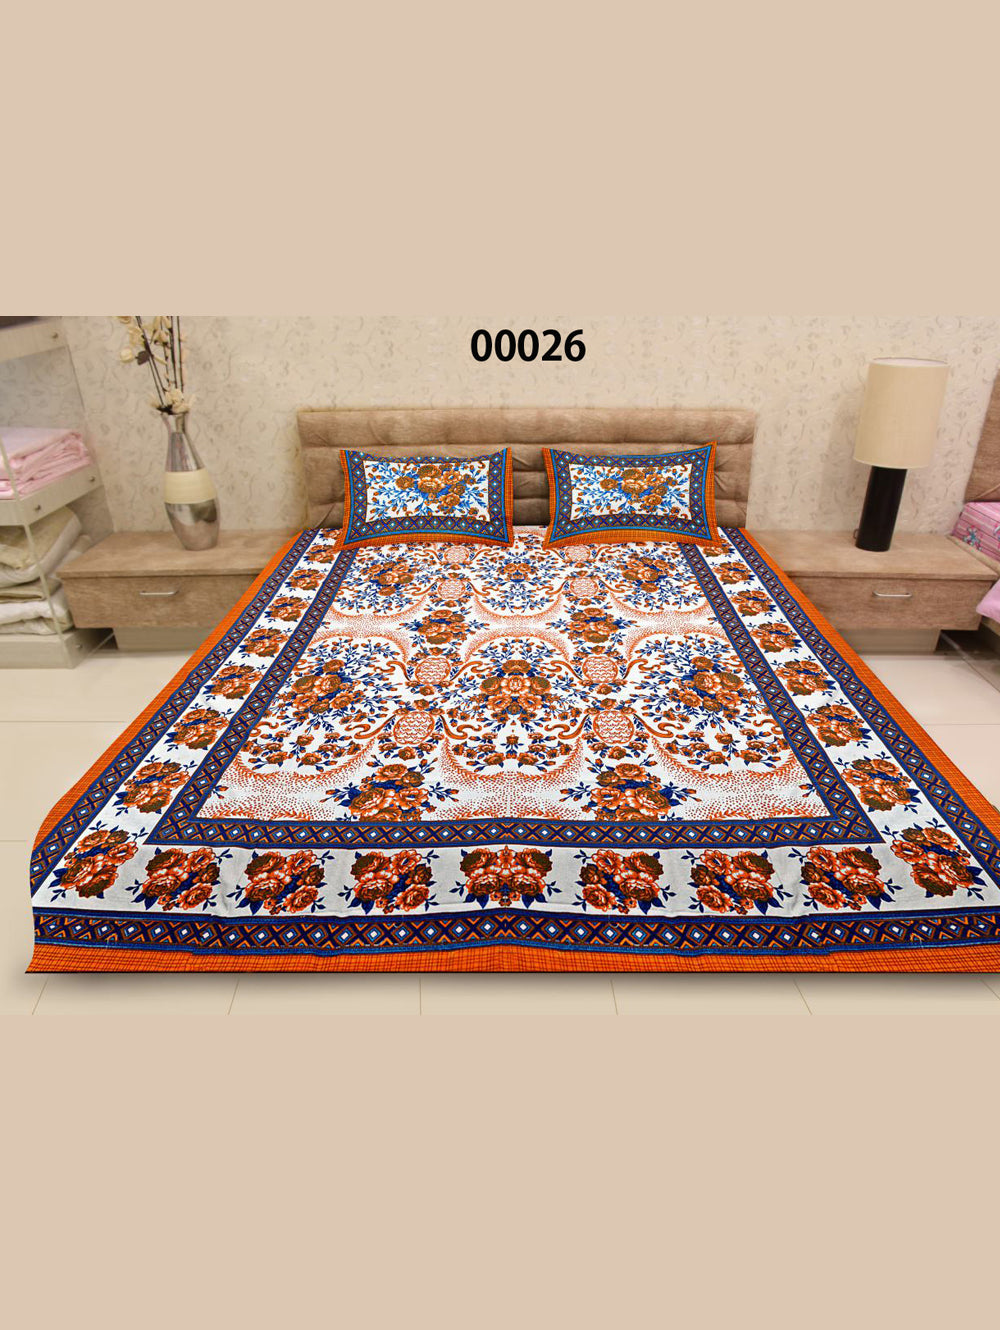 00026White and Dark Orange Ethnic Cotton Queen Size Floral Bedsheet With 2 Pillow Covers